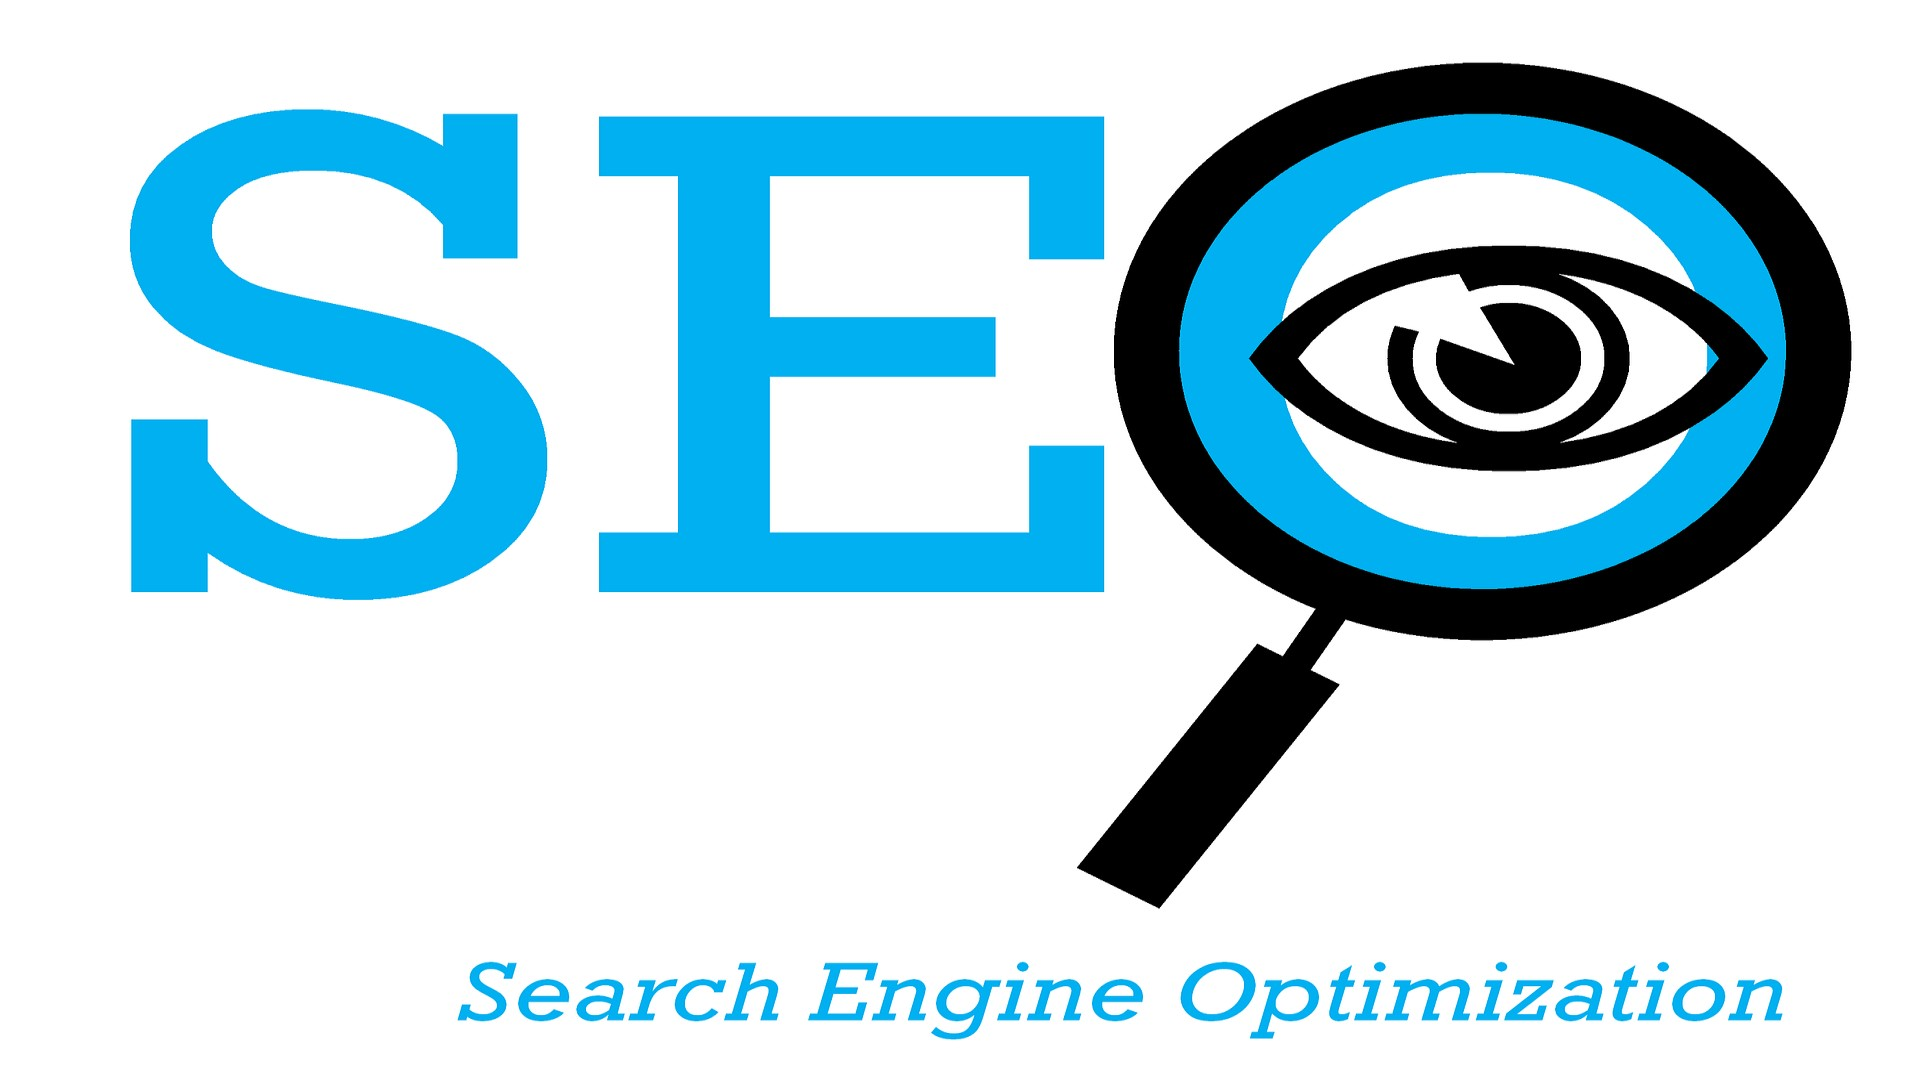 Search engine optimization is a good tool to manage online reputation.